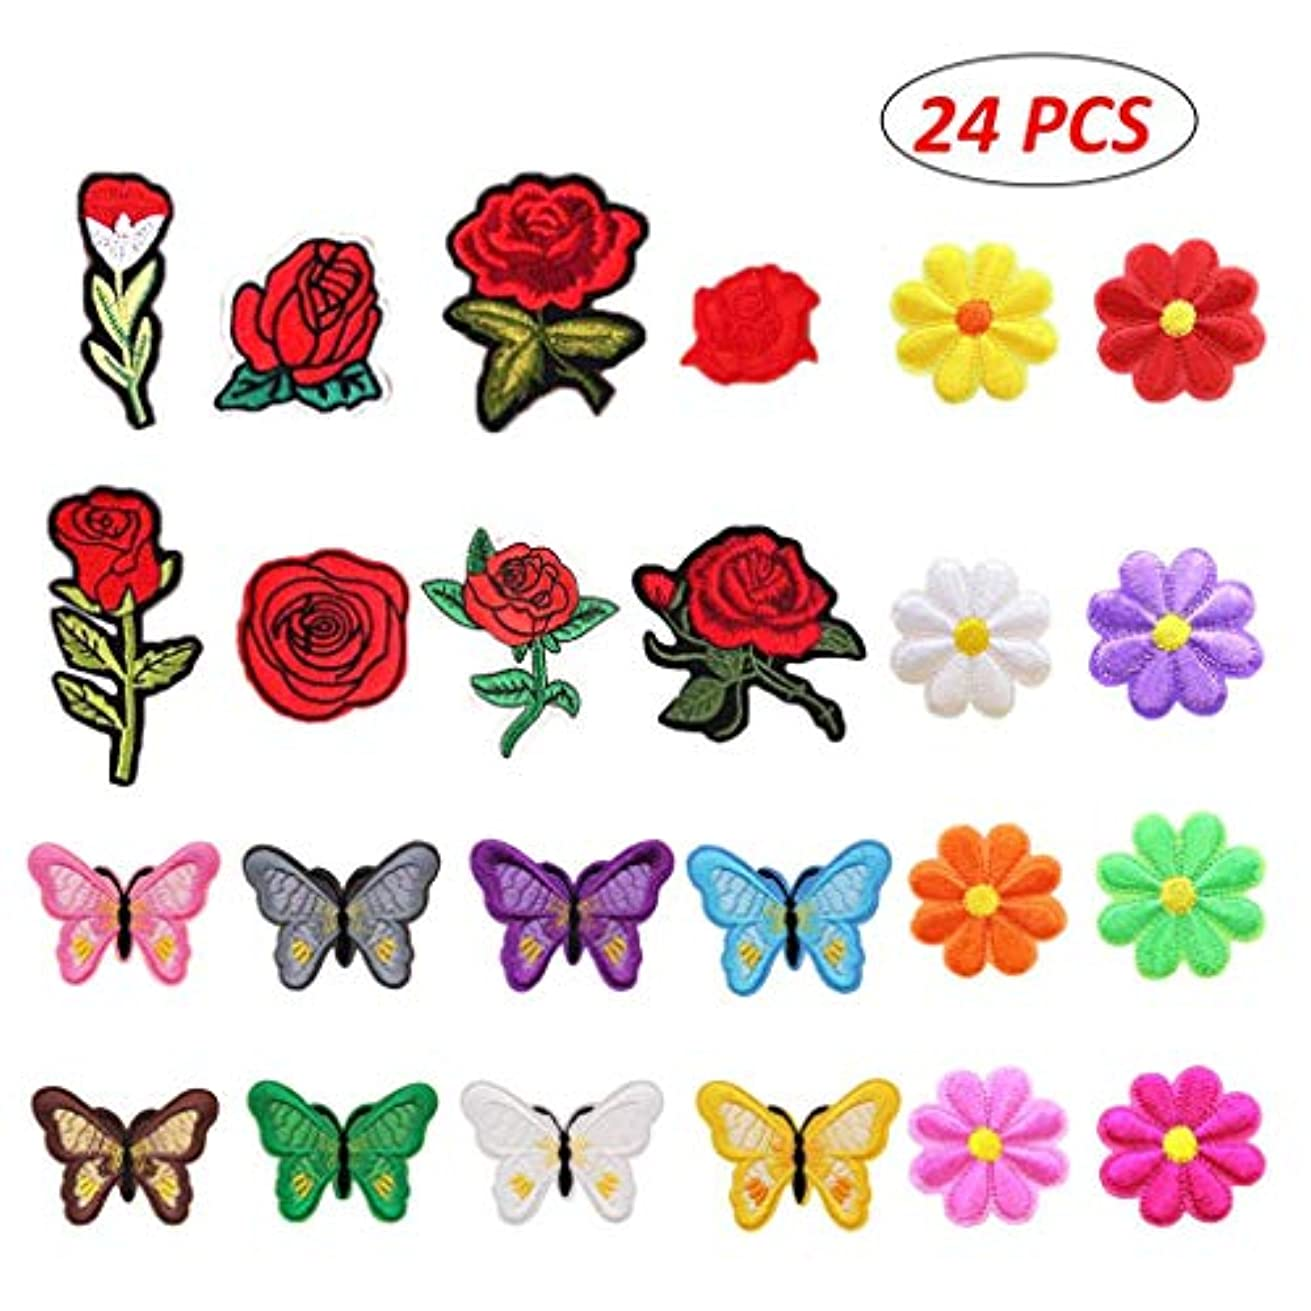 Louise Maelys 24 Pieces Flowers Butterfly Iron on Patches Embroidery Applique Patches for Arts Crafts DIY Decor, Jeans, Jackets, Clothing, Bags